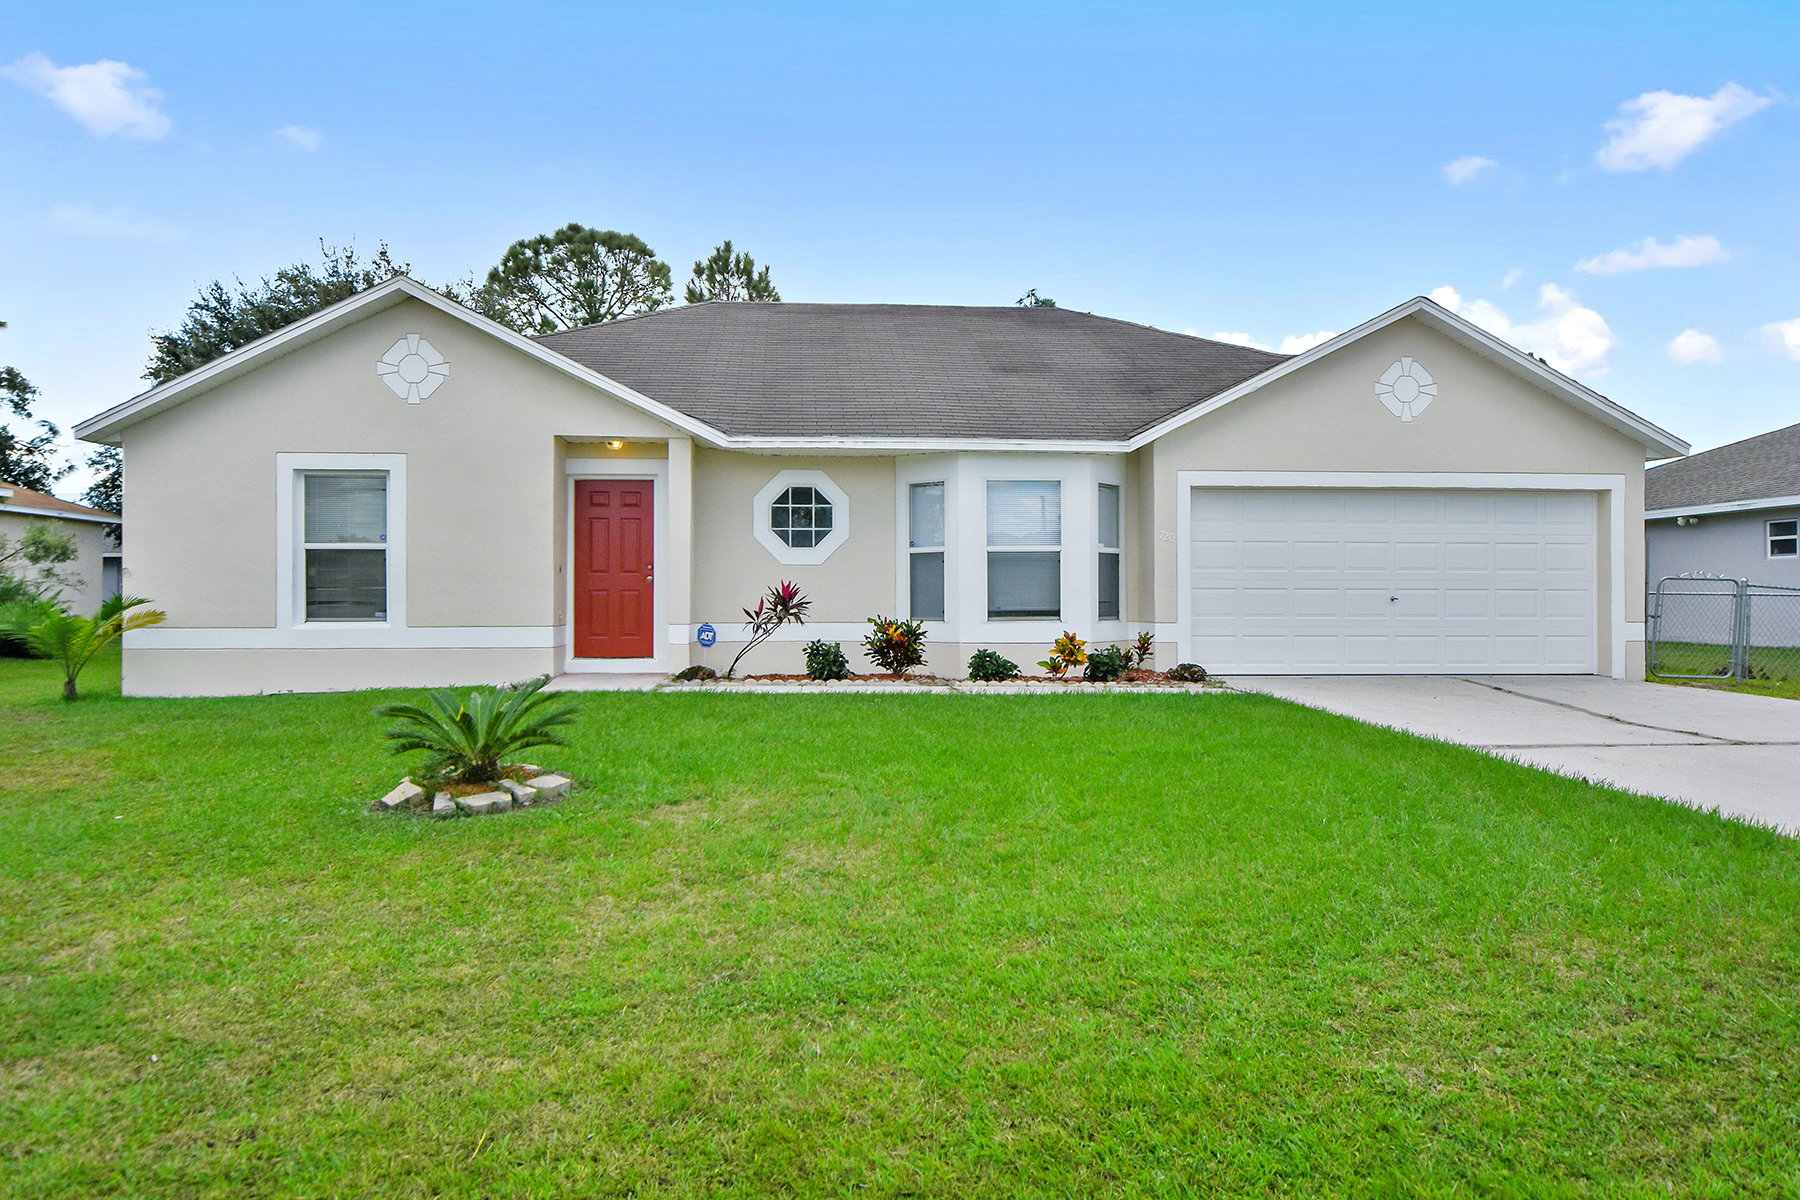 Single Family Homes for Sale at POINCIANA-ORLANDO 720 Parrot Ct Poinciana, Florida 34759 United States